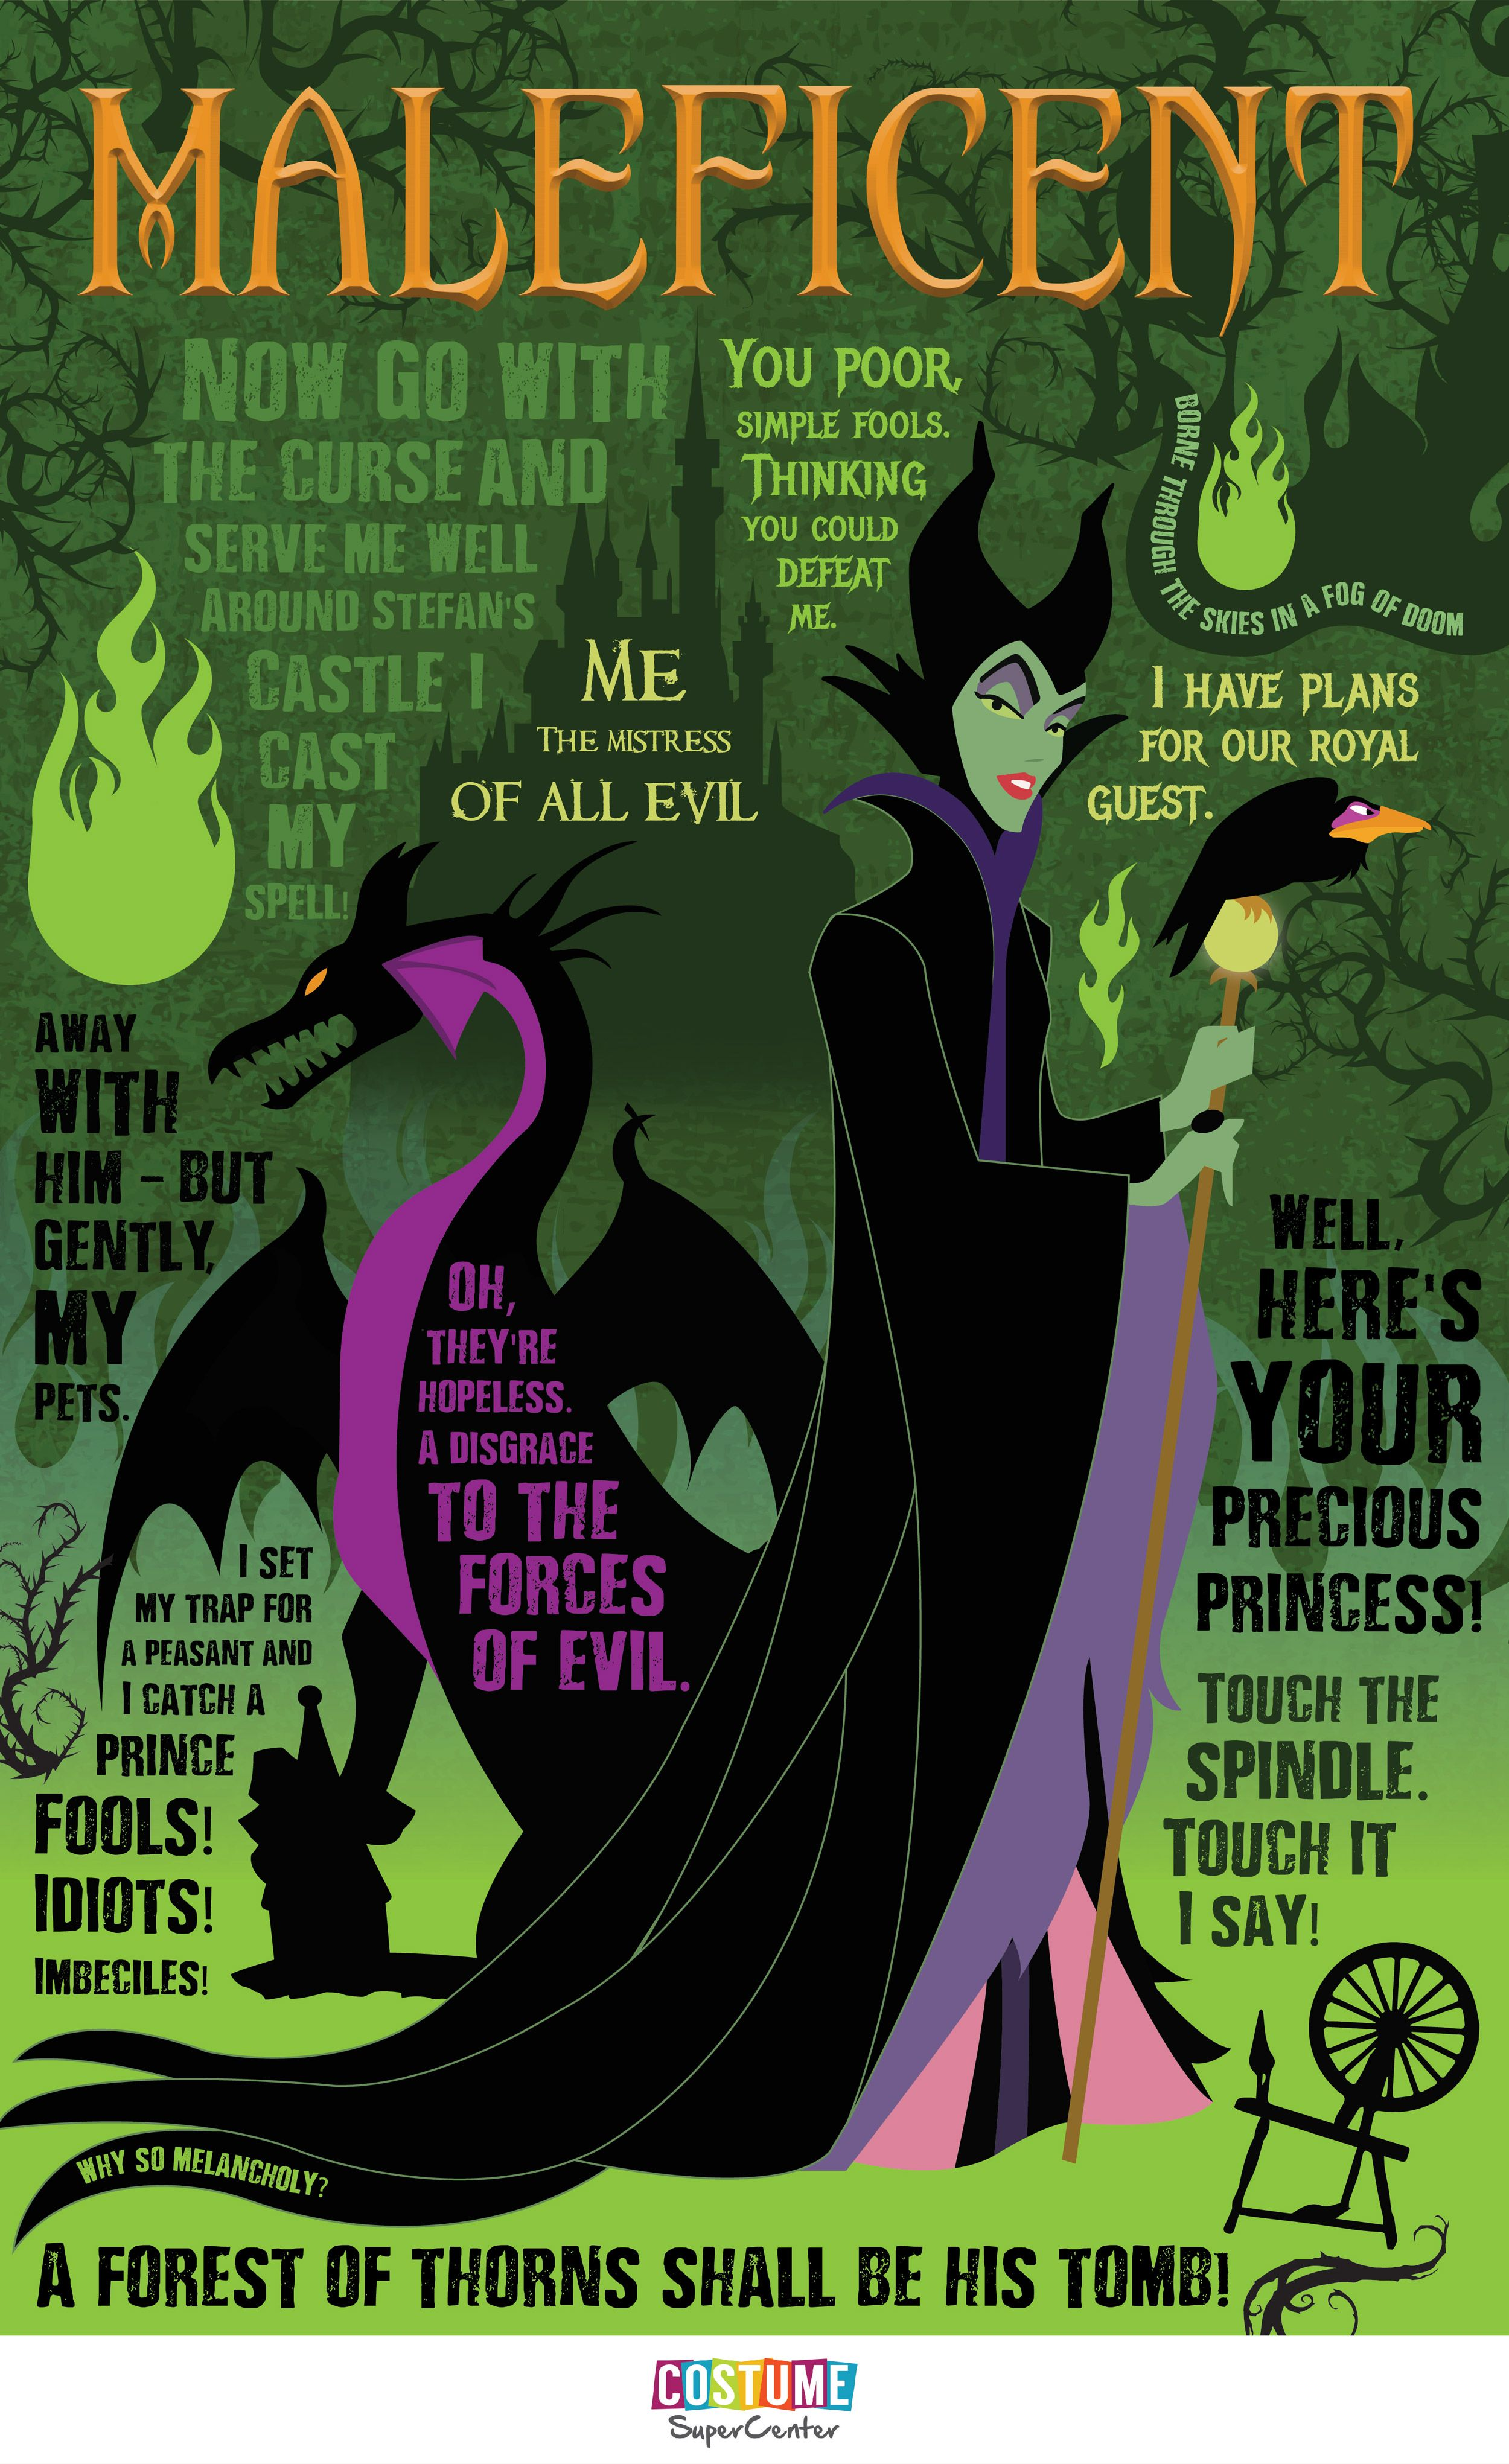 The Mistress Of All Evil Maleficent Quotable Infographic